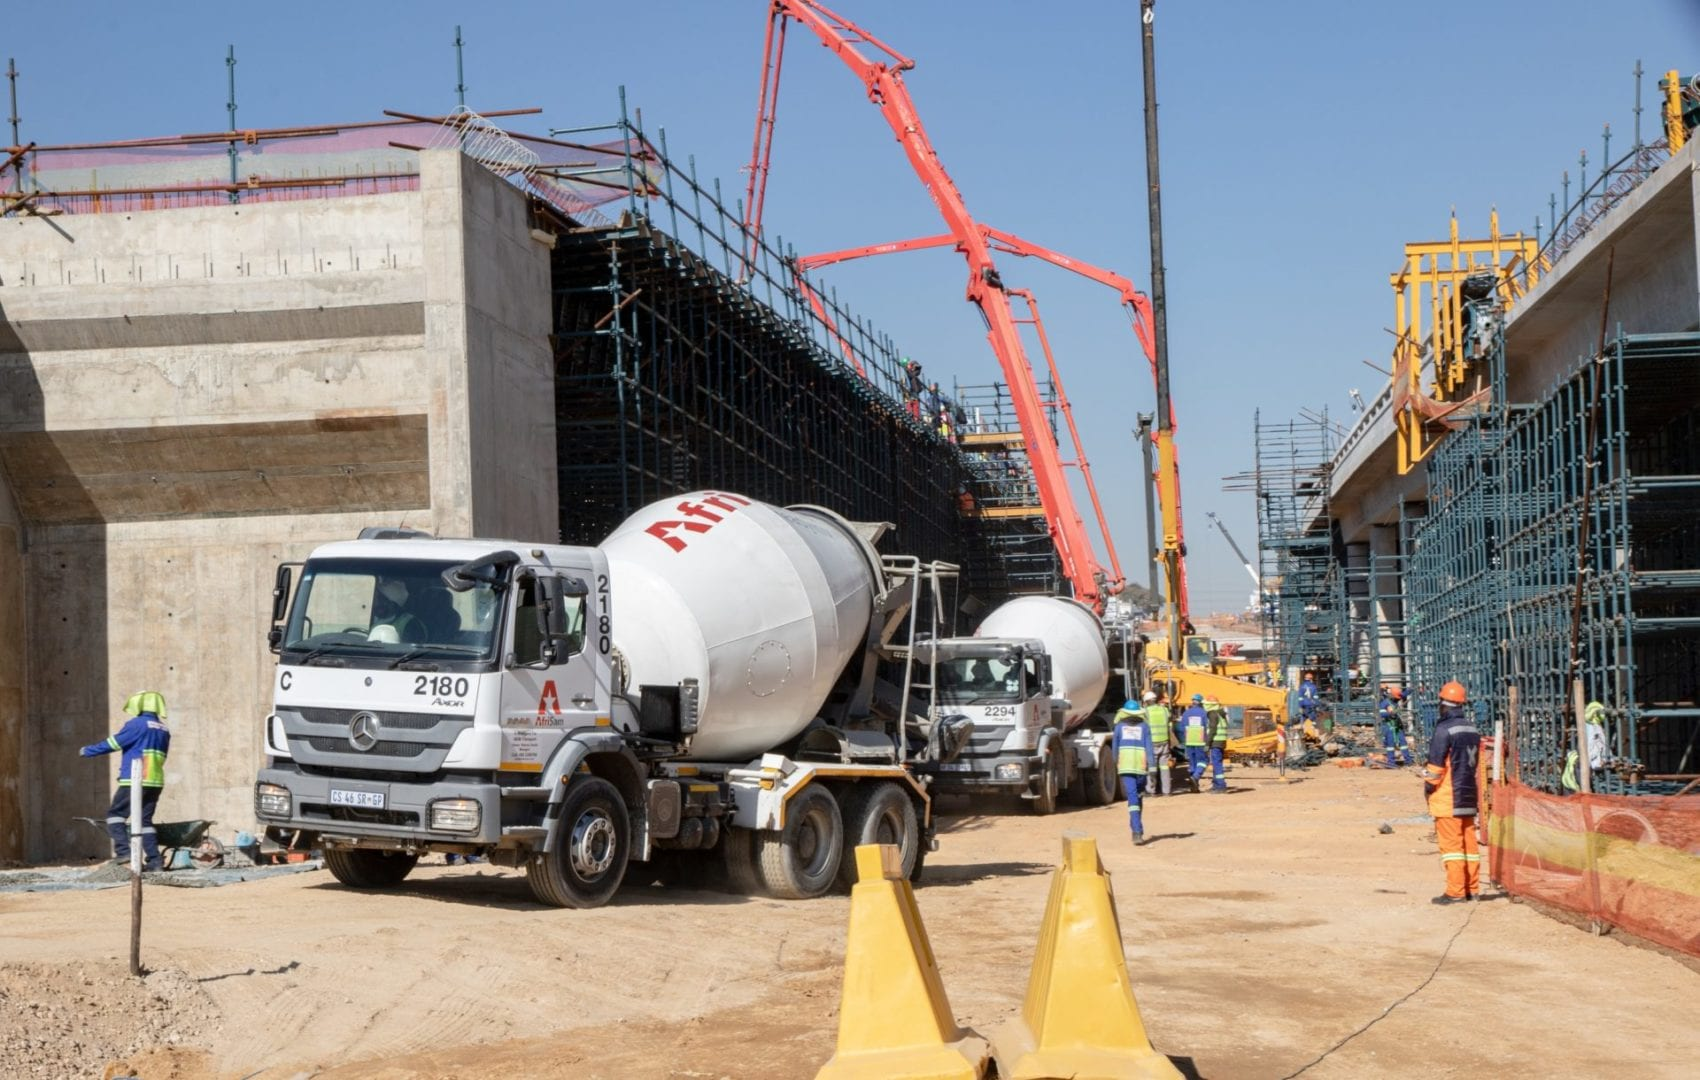 AfriSam concrete expertise for WBHO's BRT contract